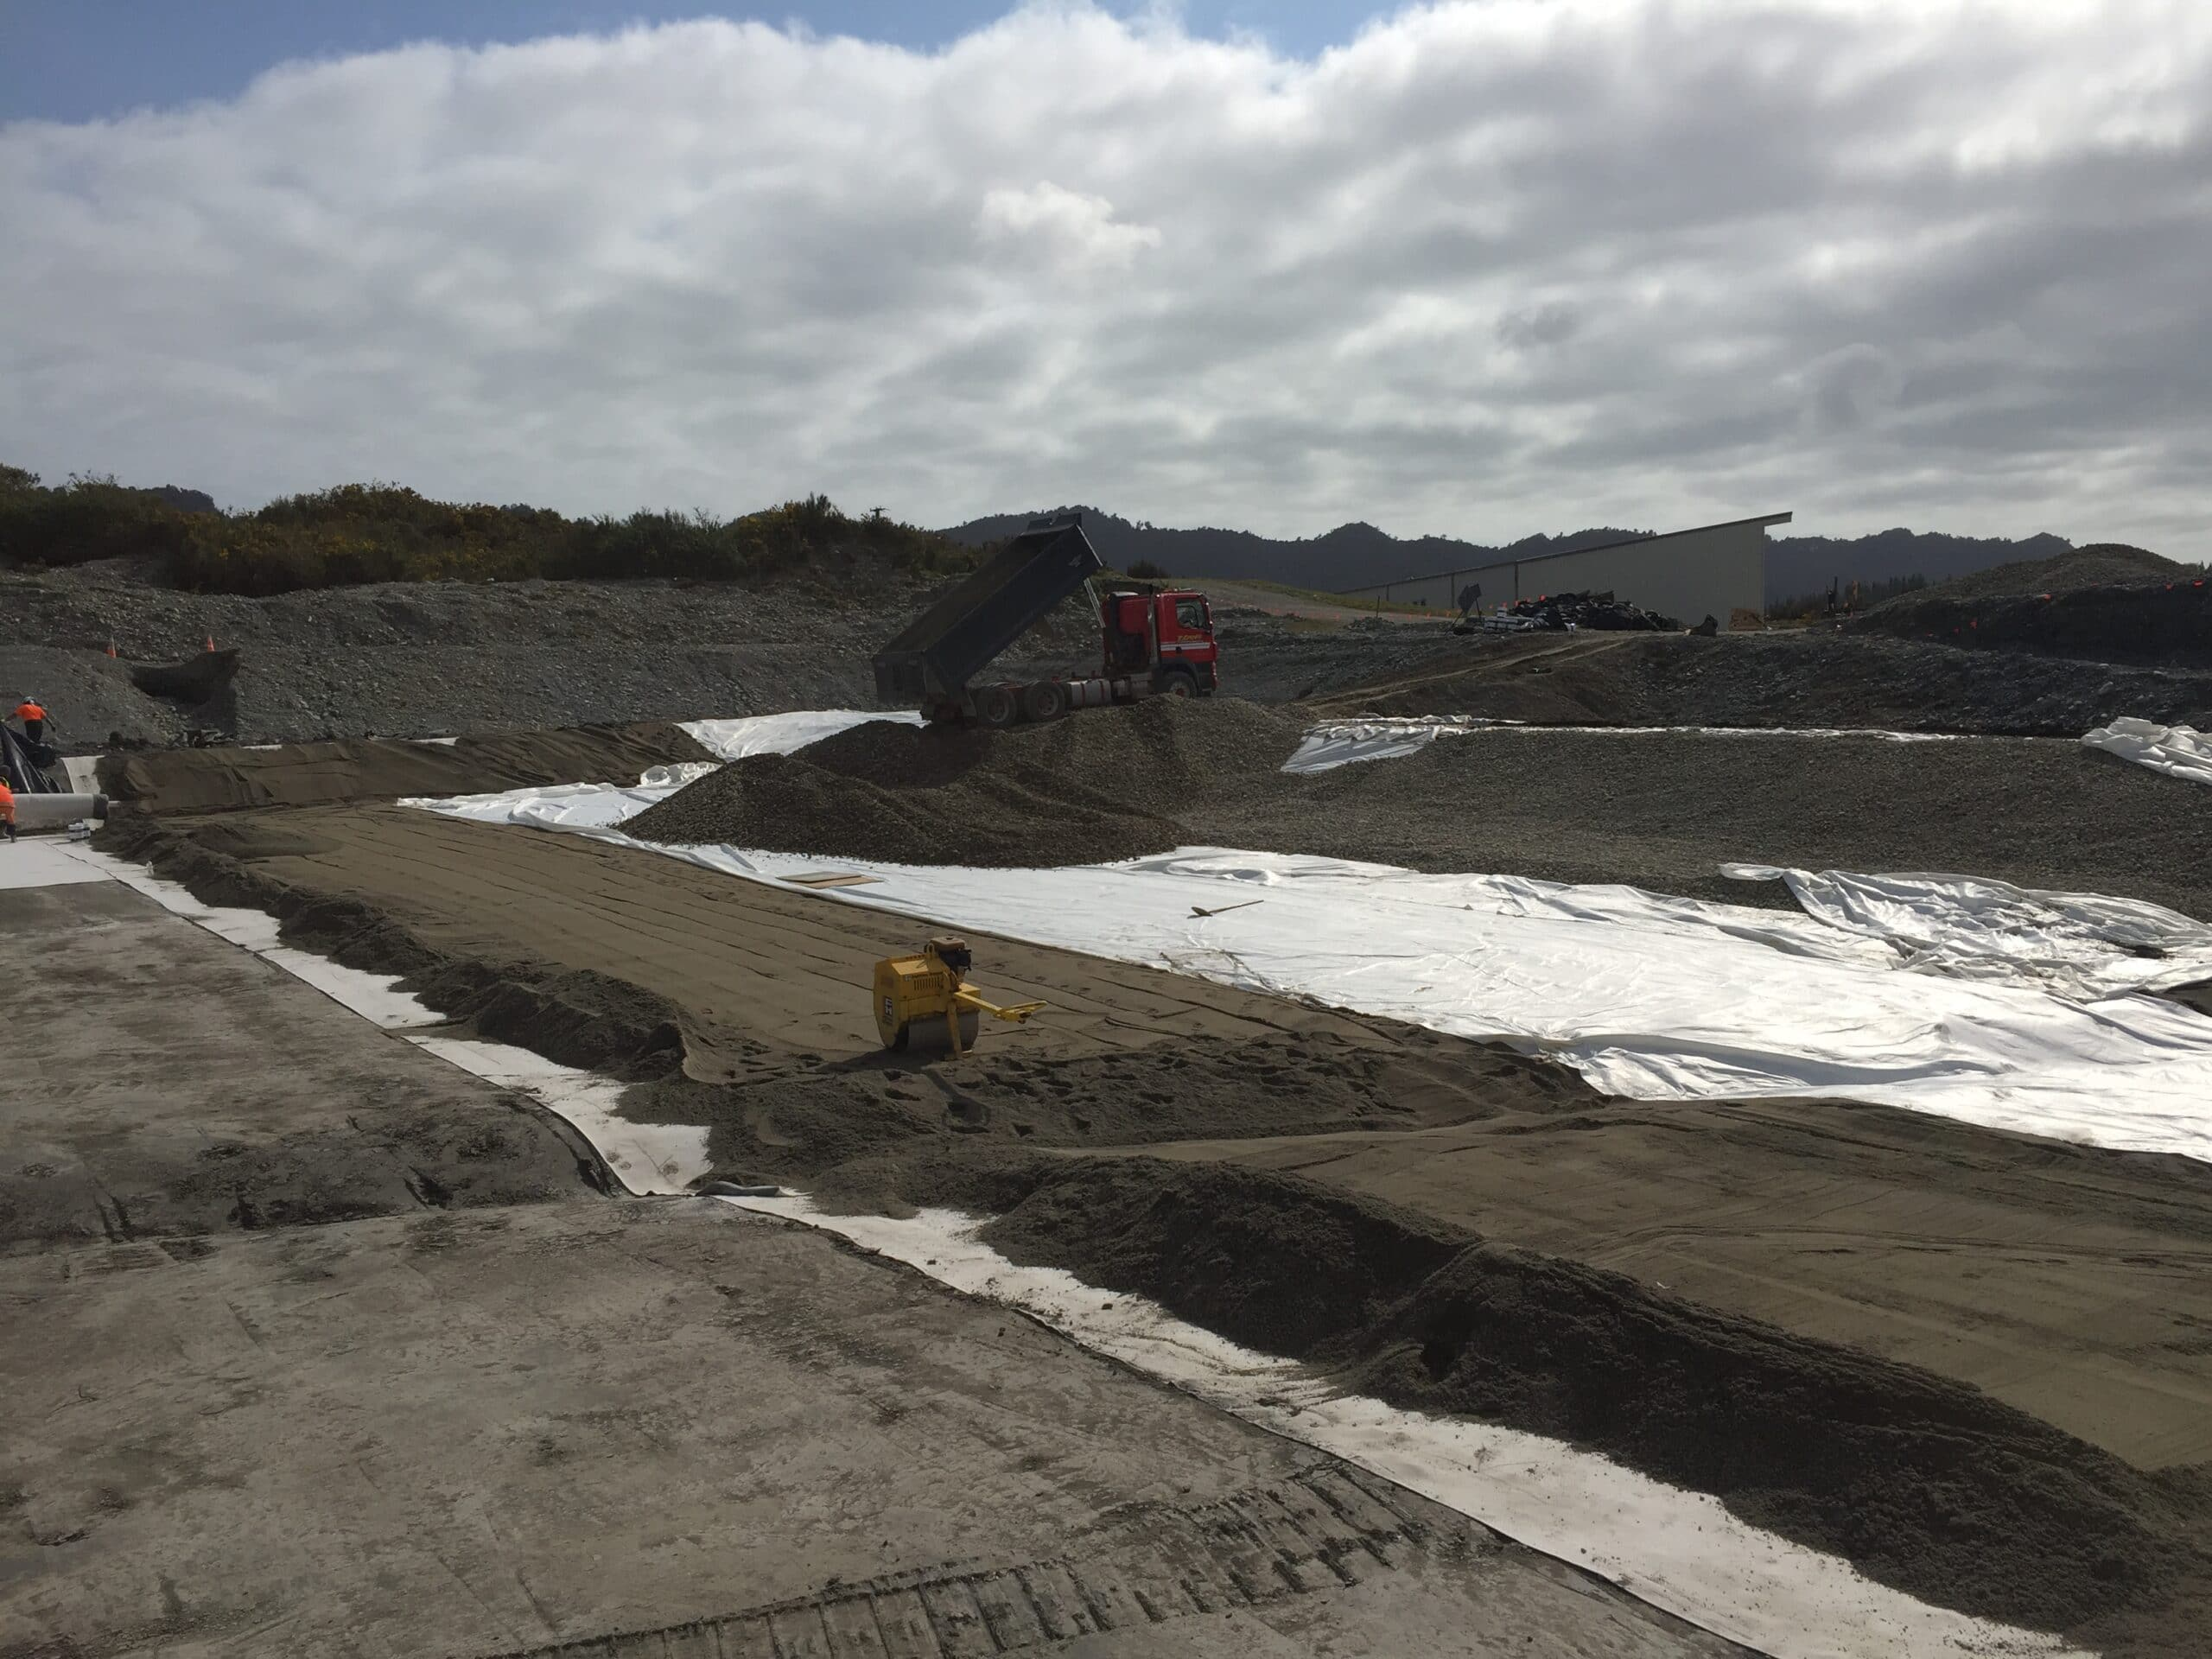 GrantHood_McLeans-Pit-Landfill-3a-6